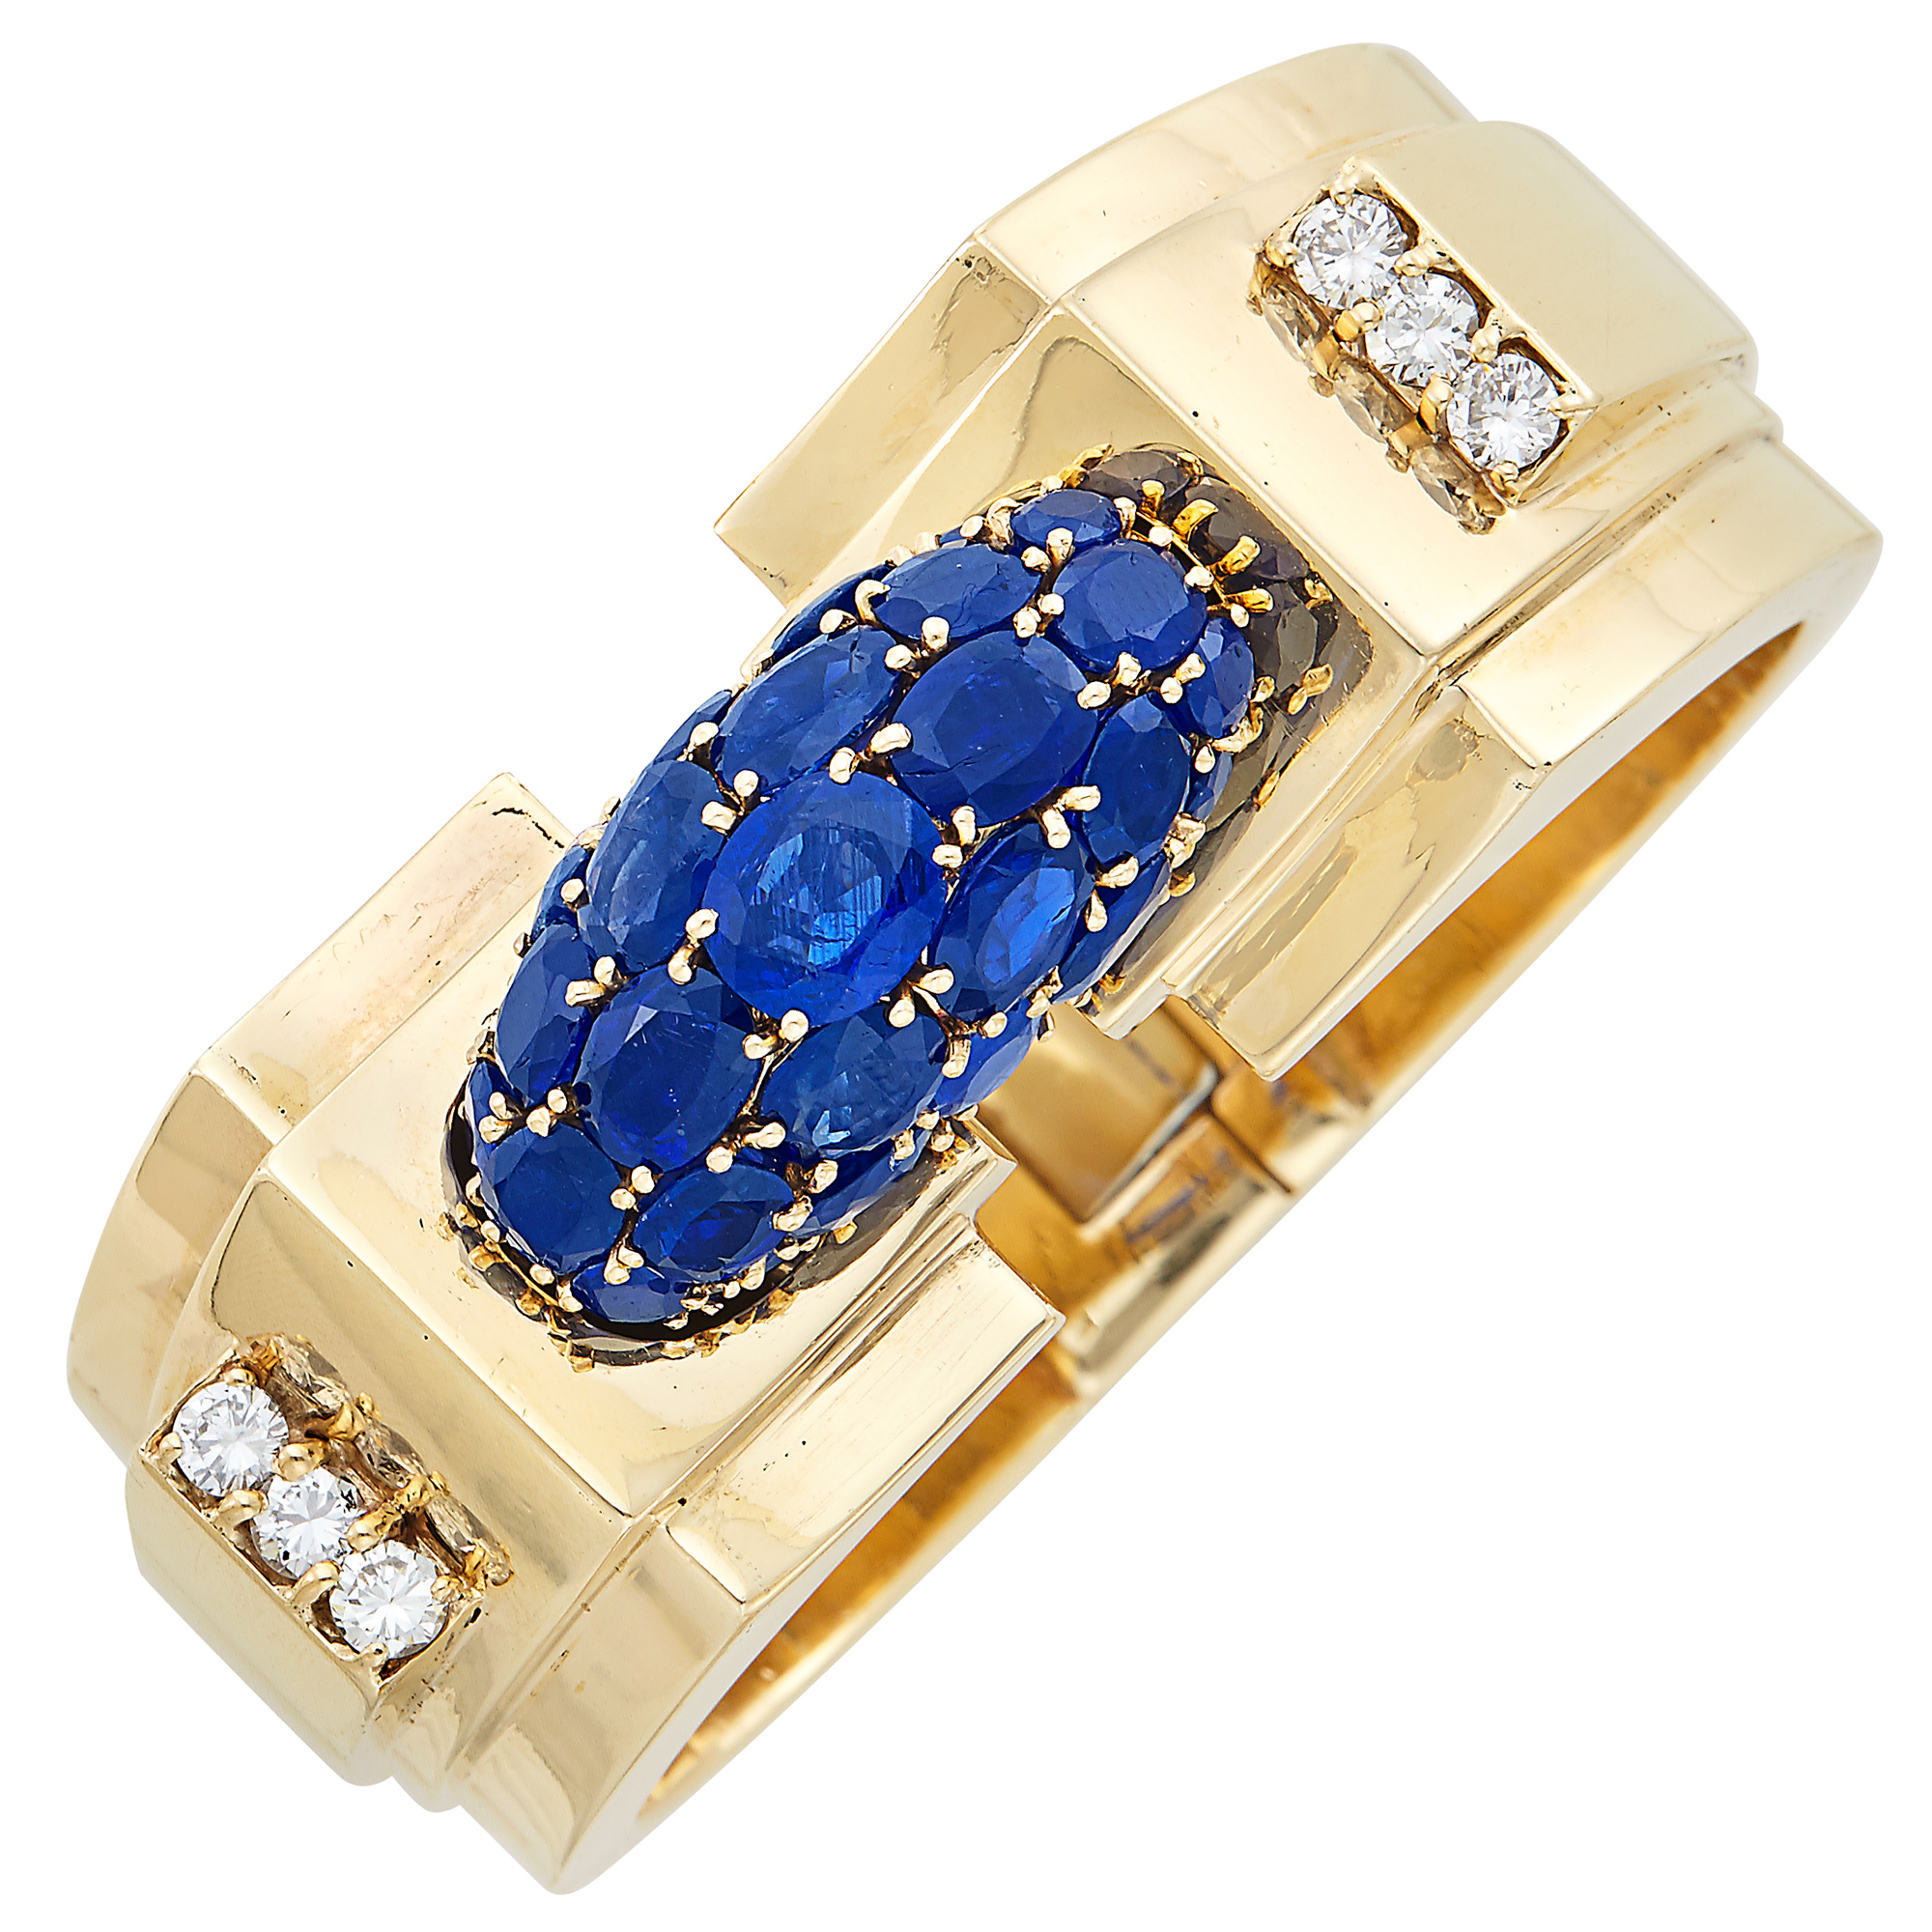 Lot image - Gold, Sapphire and Diamond Bombé Bangle Bracelet, Trabert & Hoeffer, Mauboussin, Reflections